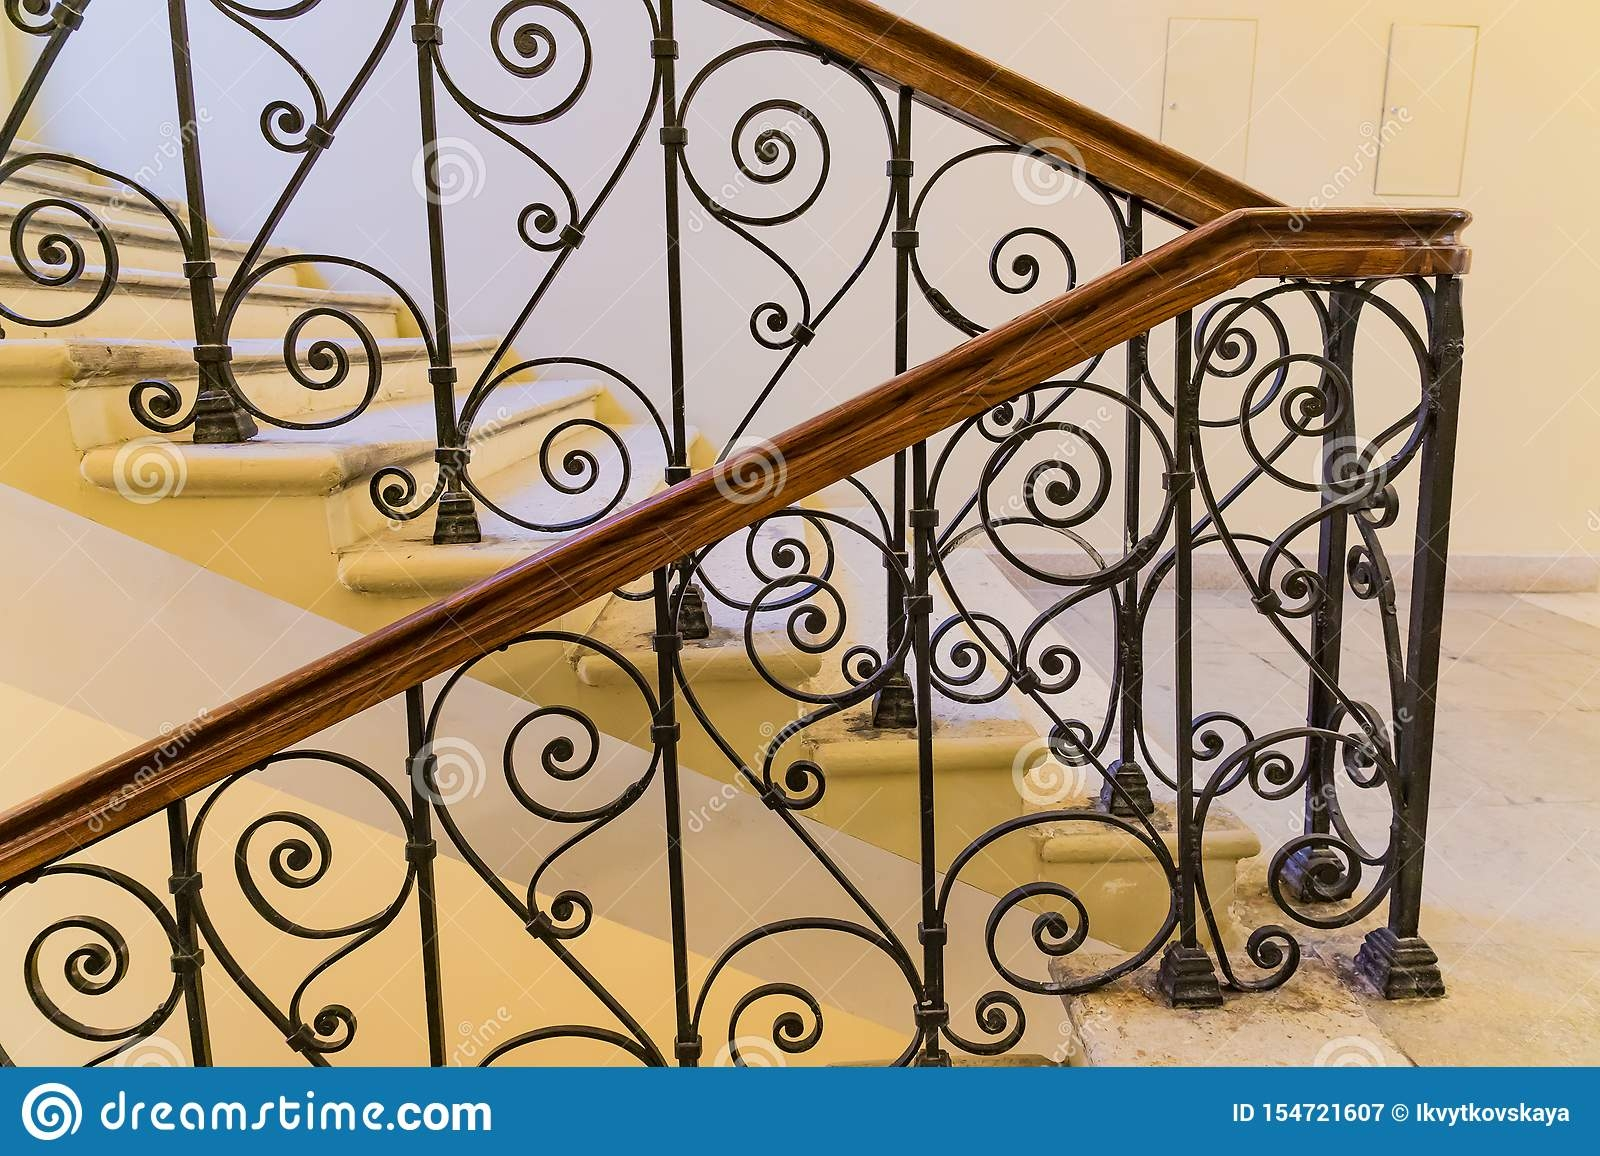 Steps With Handrails Forged Staircase Indoors Stock Image Image | Handrails For Steps Indoors | Staircase Around Lift Wall | Glass Panel Stainless Steel Handrail | Narrow Staircase Brushed Nickel | Width Hand | Minimalist